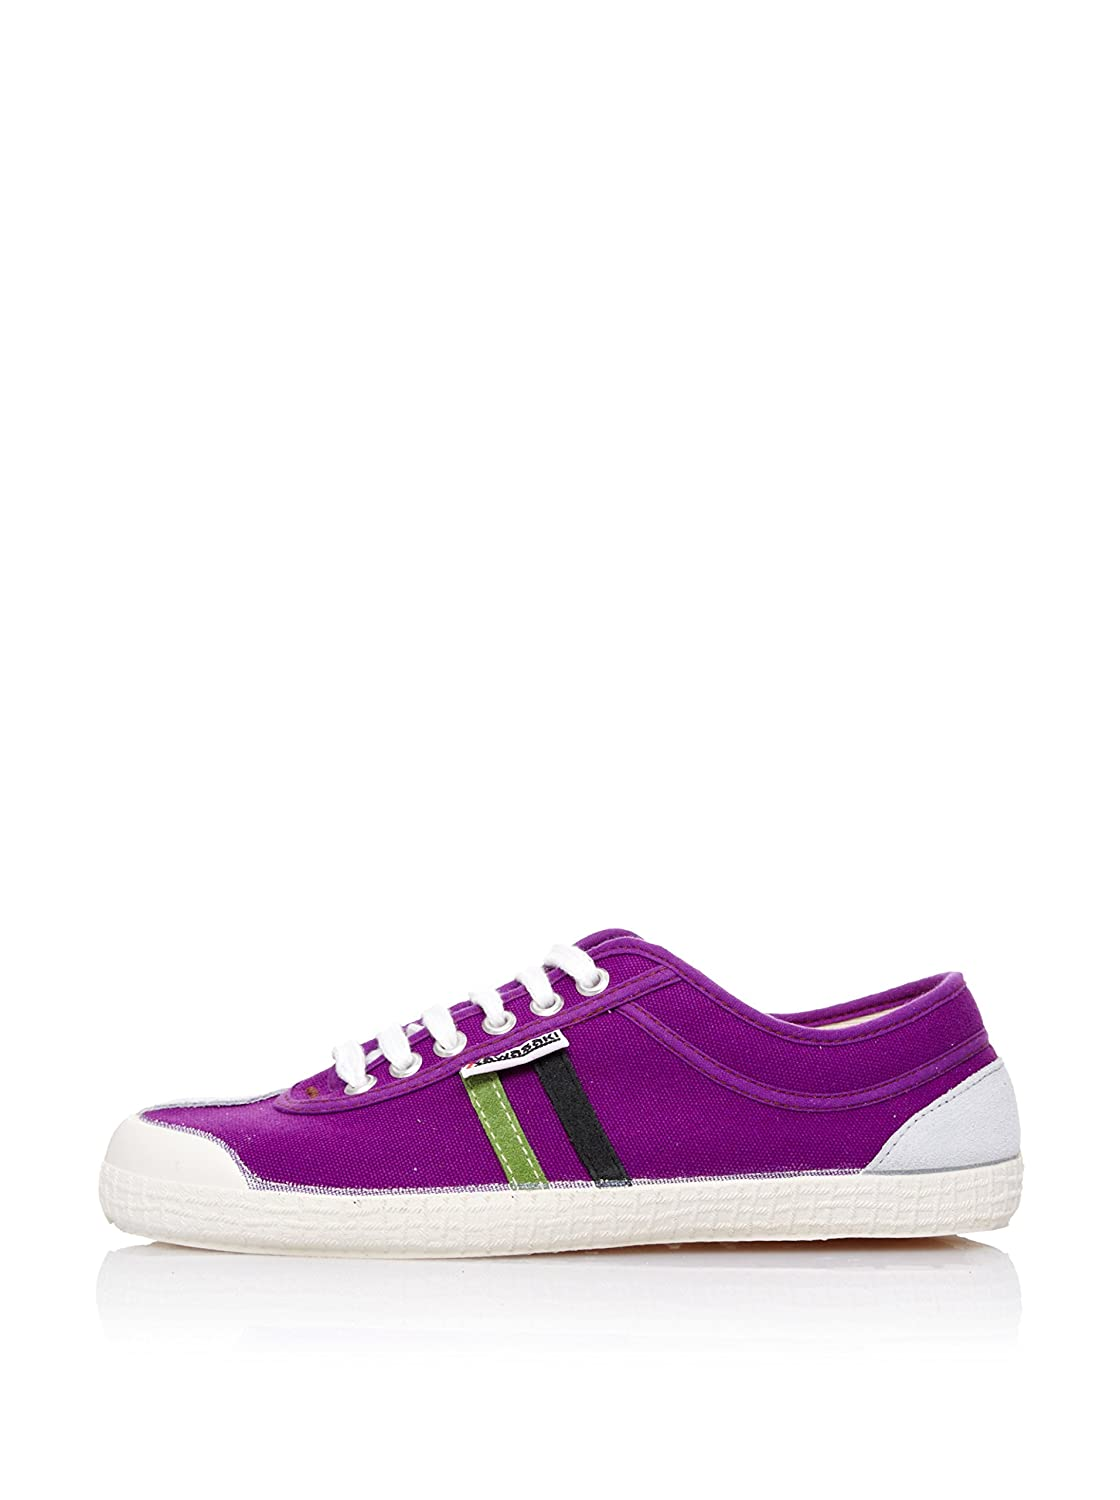 Kawasaki Zapatillas Retro Seasonal Morado EU 38: Amazon.es: Zapatos y complementos